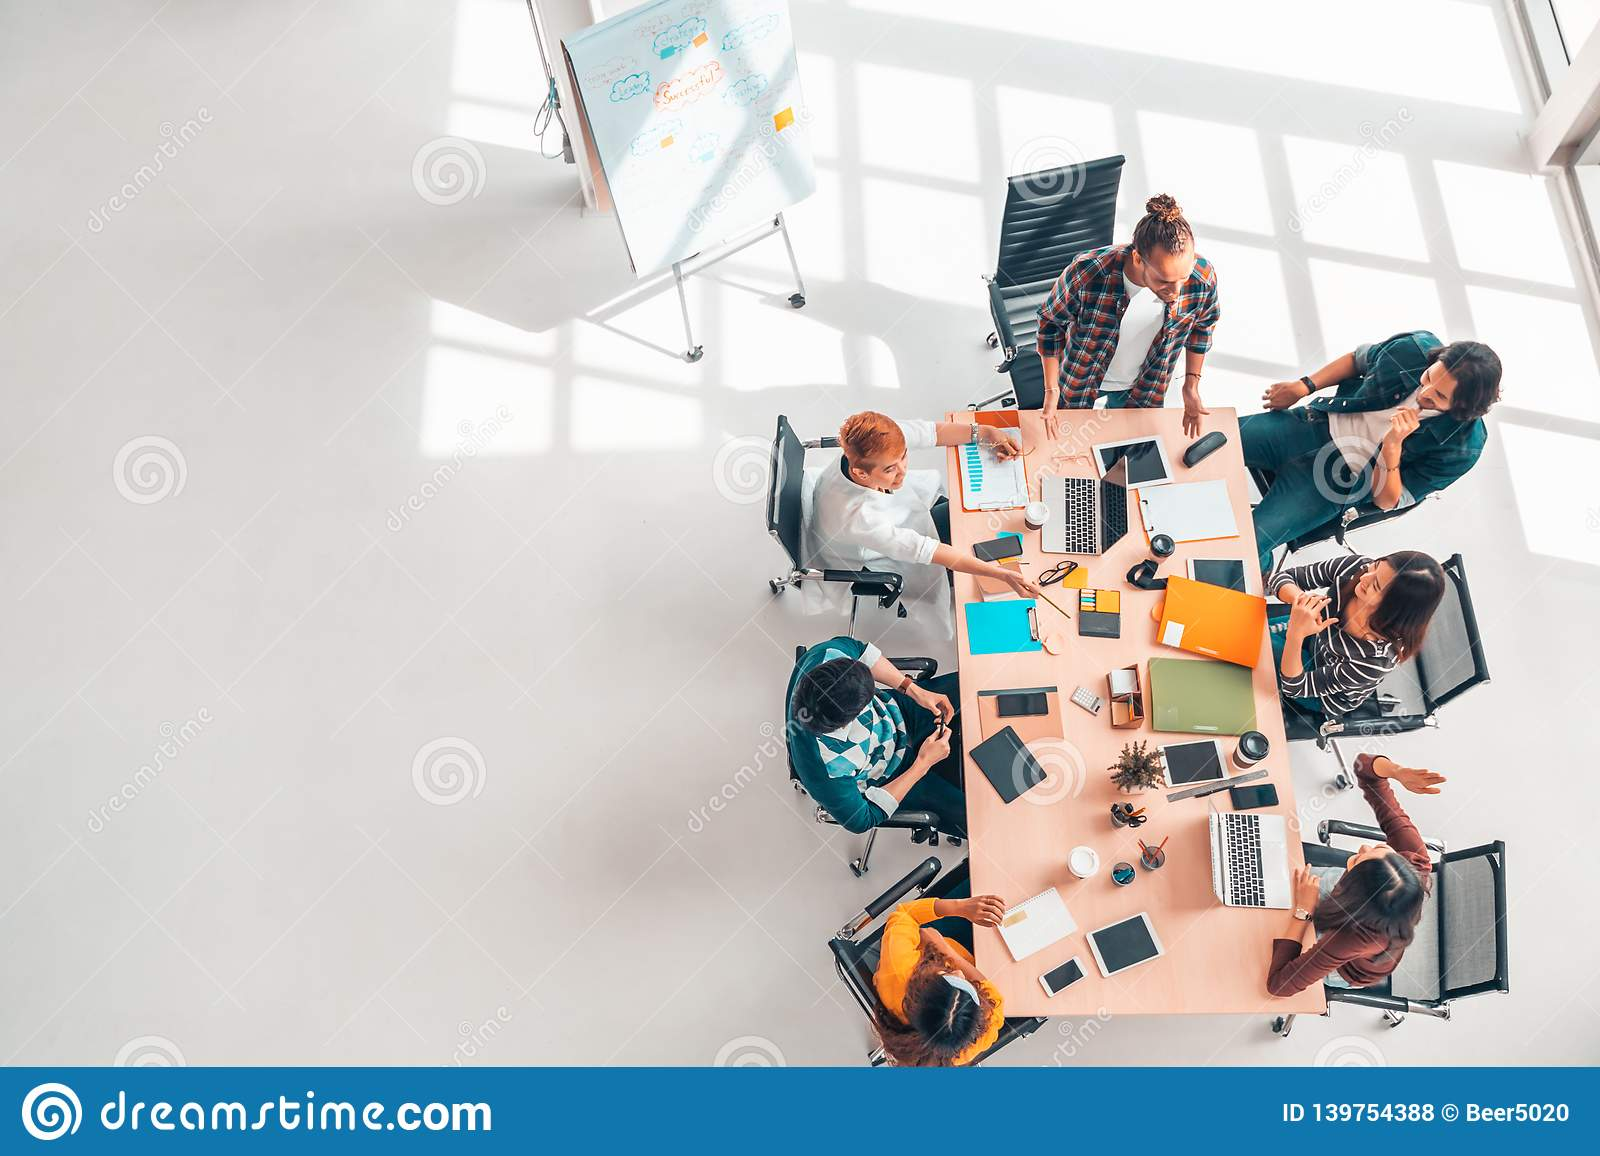 Multiethnic diverse group of business coworkers in team meeting discussion, top view modern office with copy space